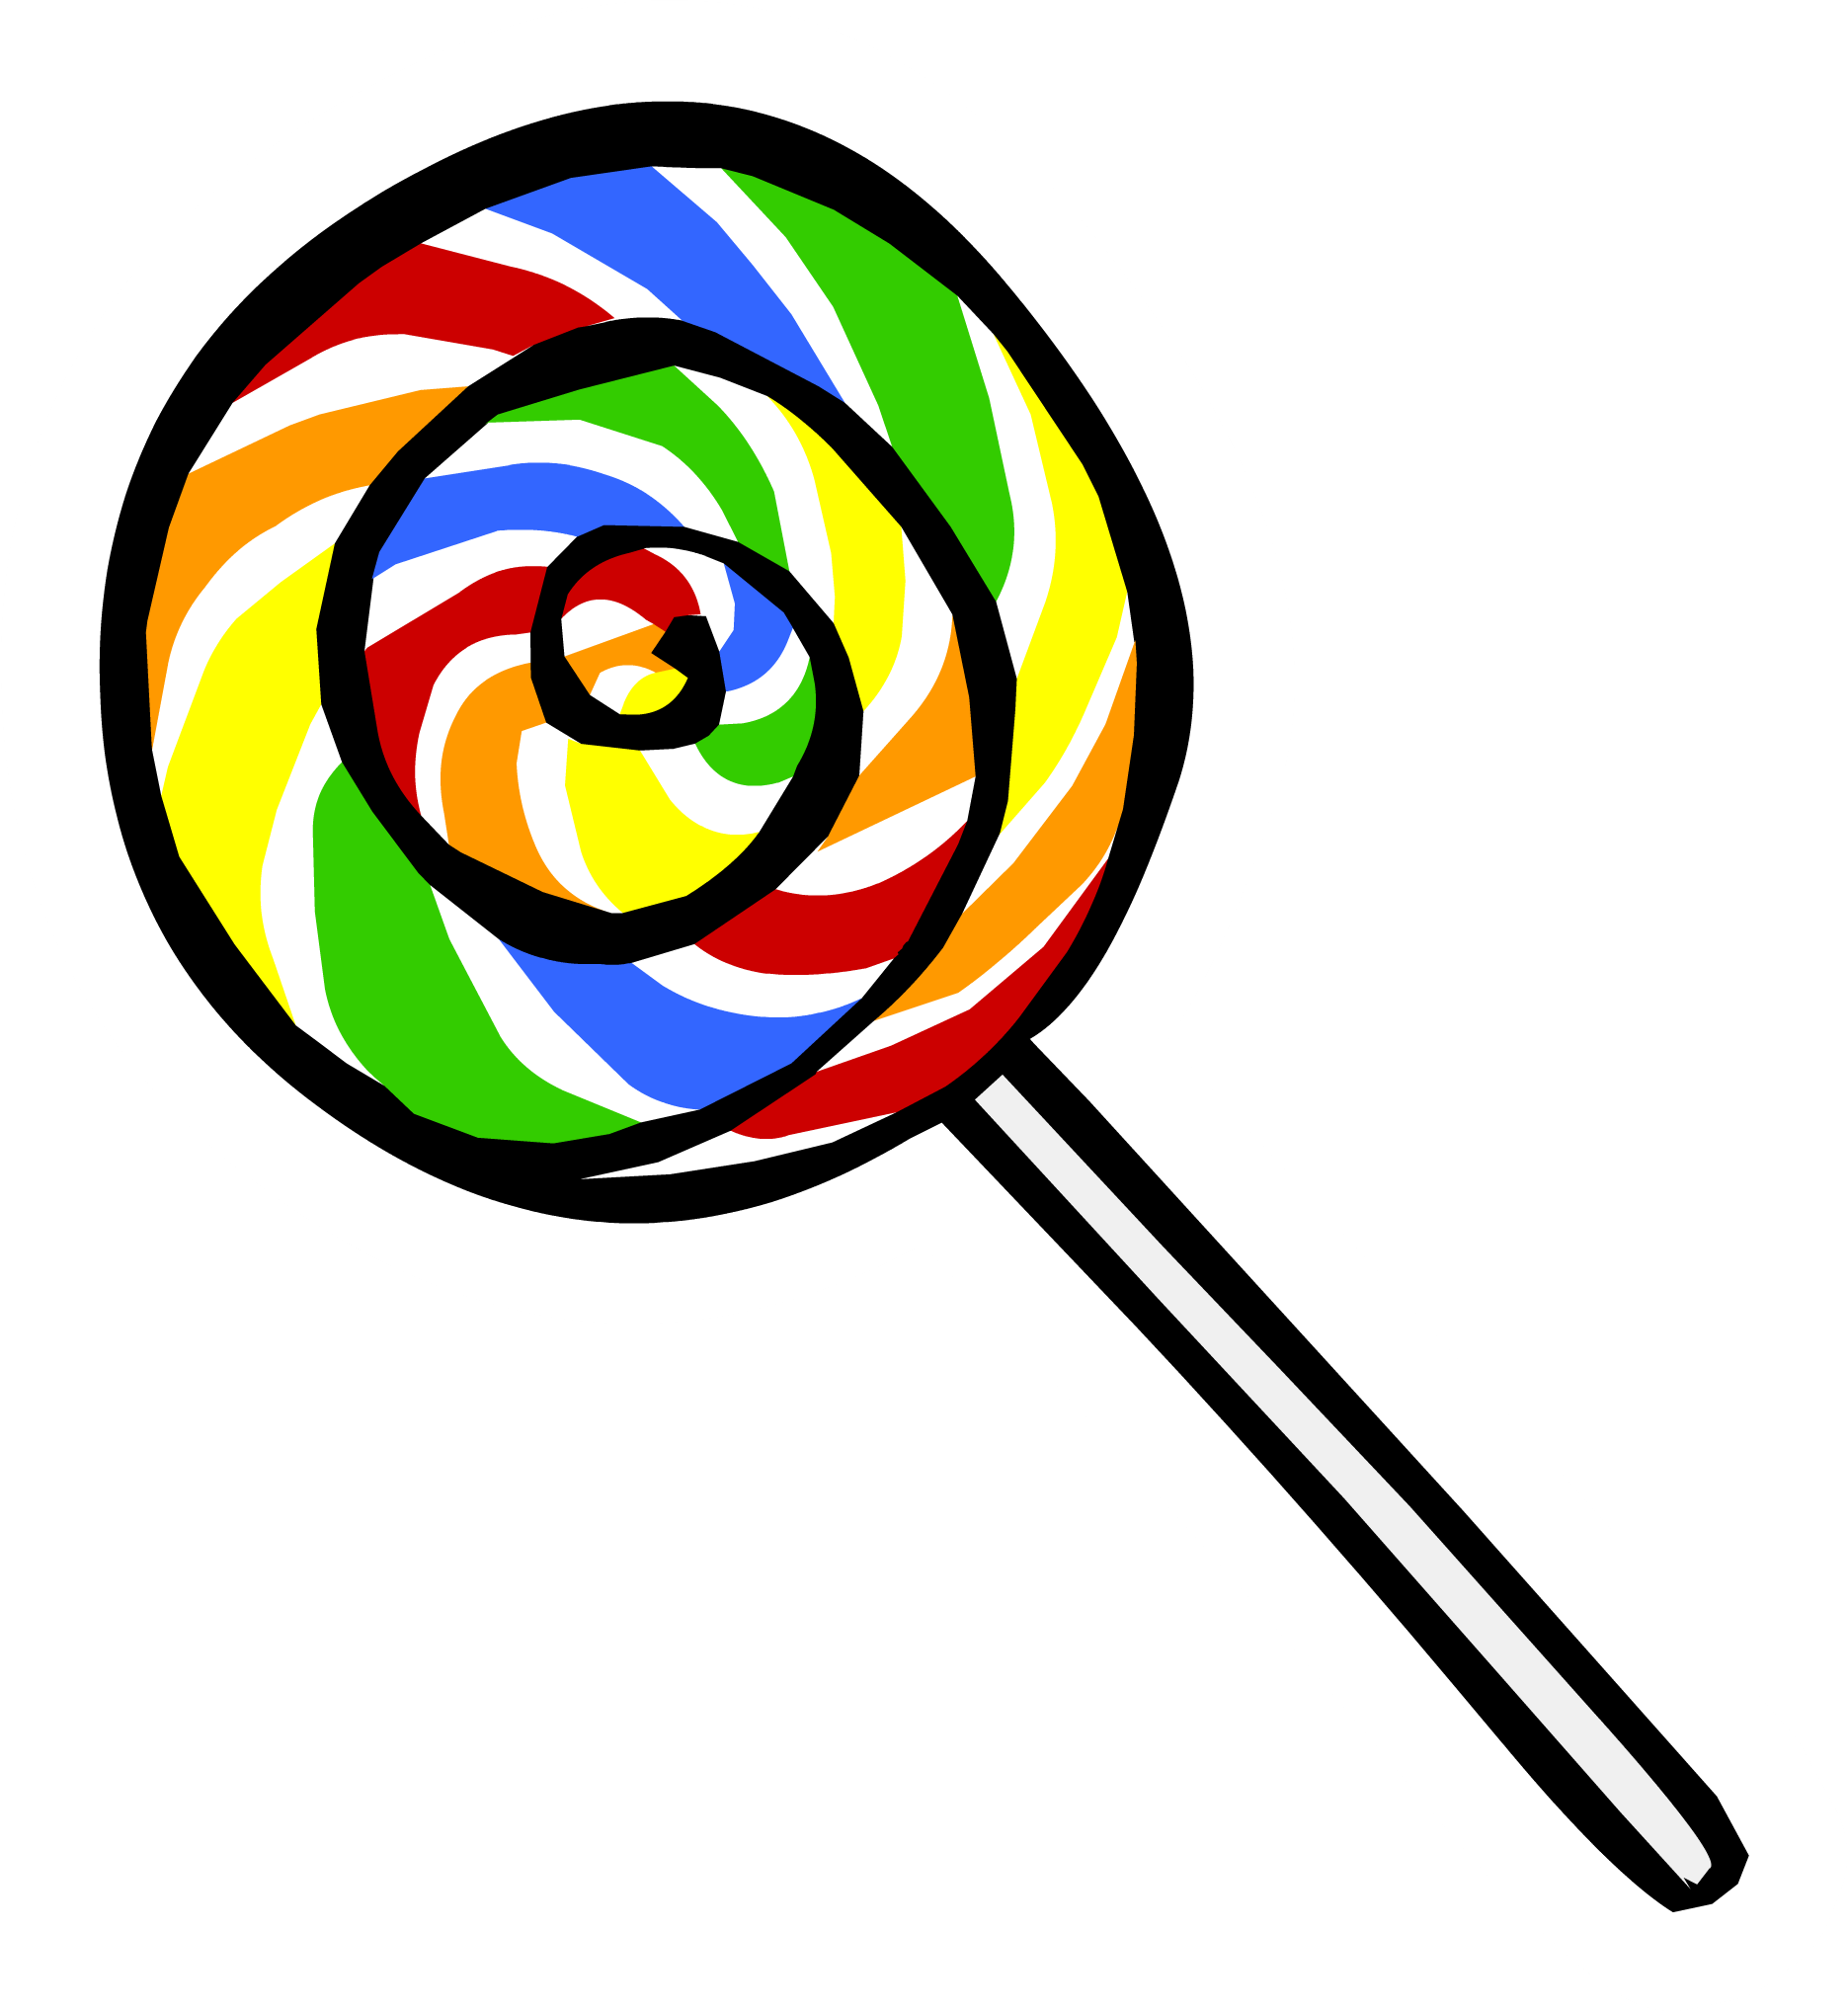 Free clipart images library download clipart freeuse library Lollipop free download clip art on clipart library - Cliparting.com clipart freeuse library